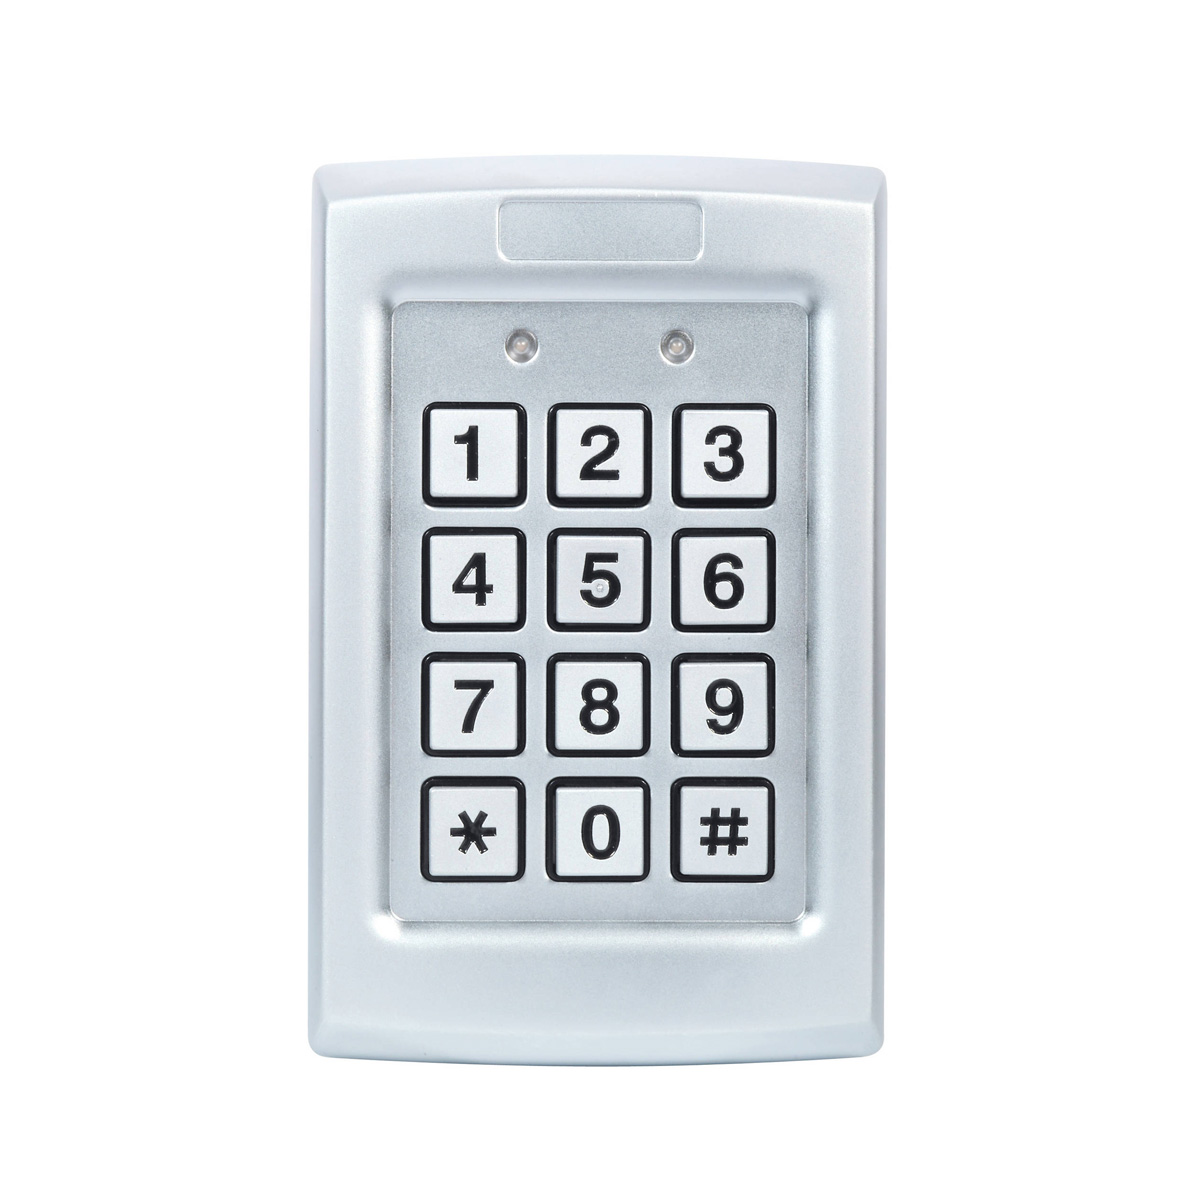 CONAC-365 | Convertible accesses control Keyboard (off-line/Wiegand 26bit)